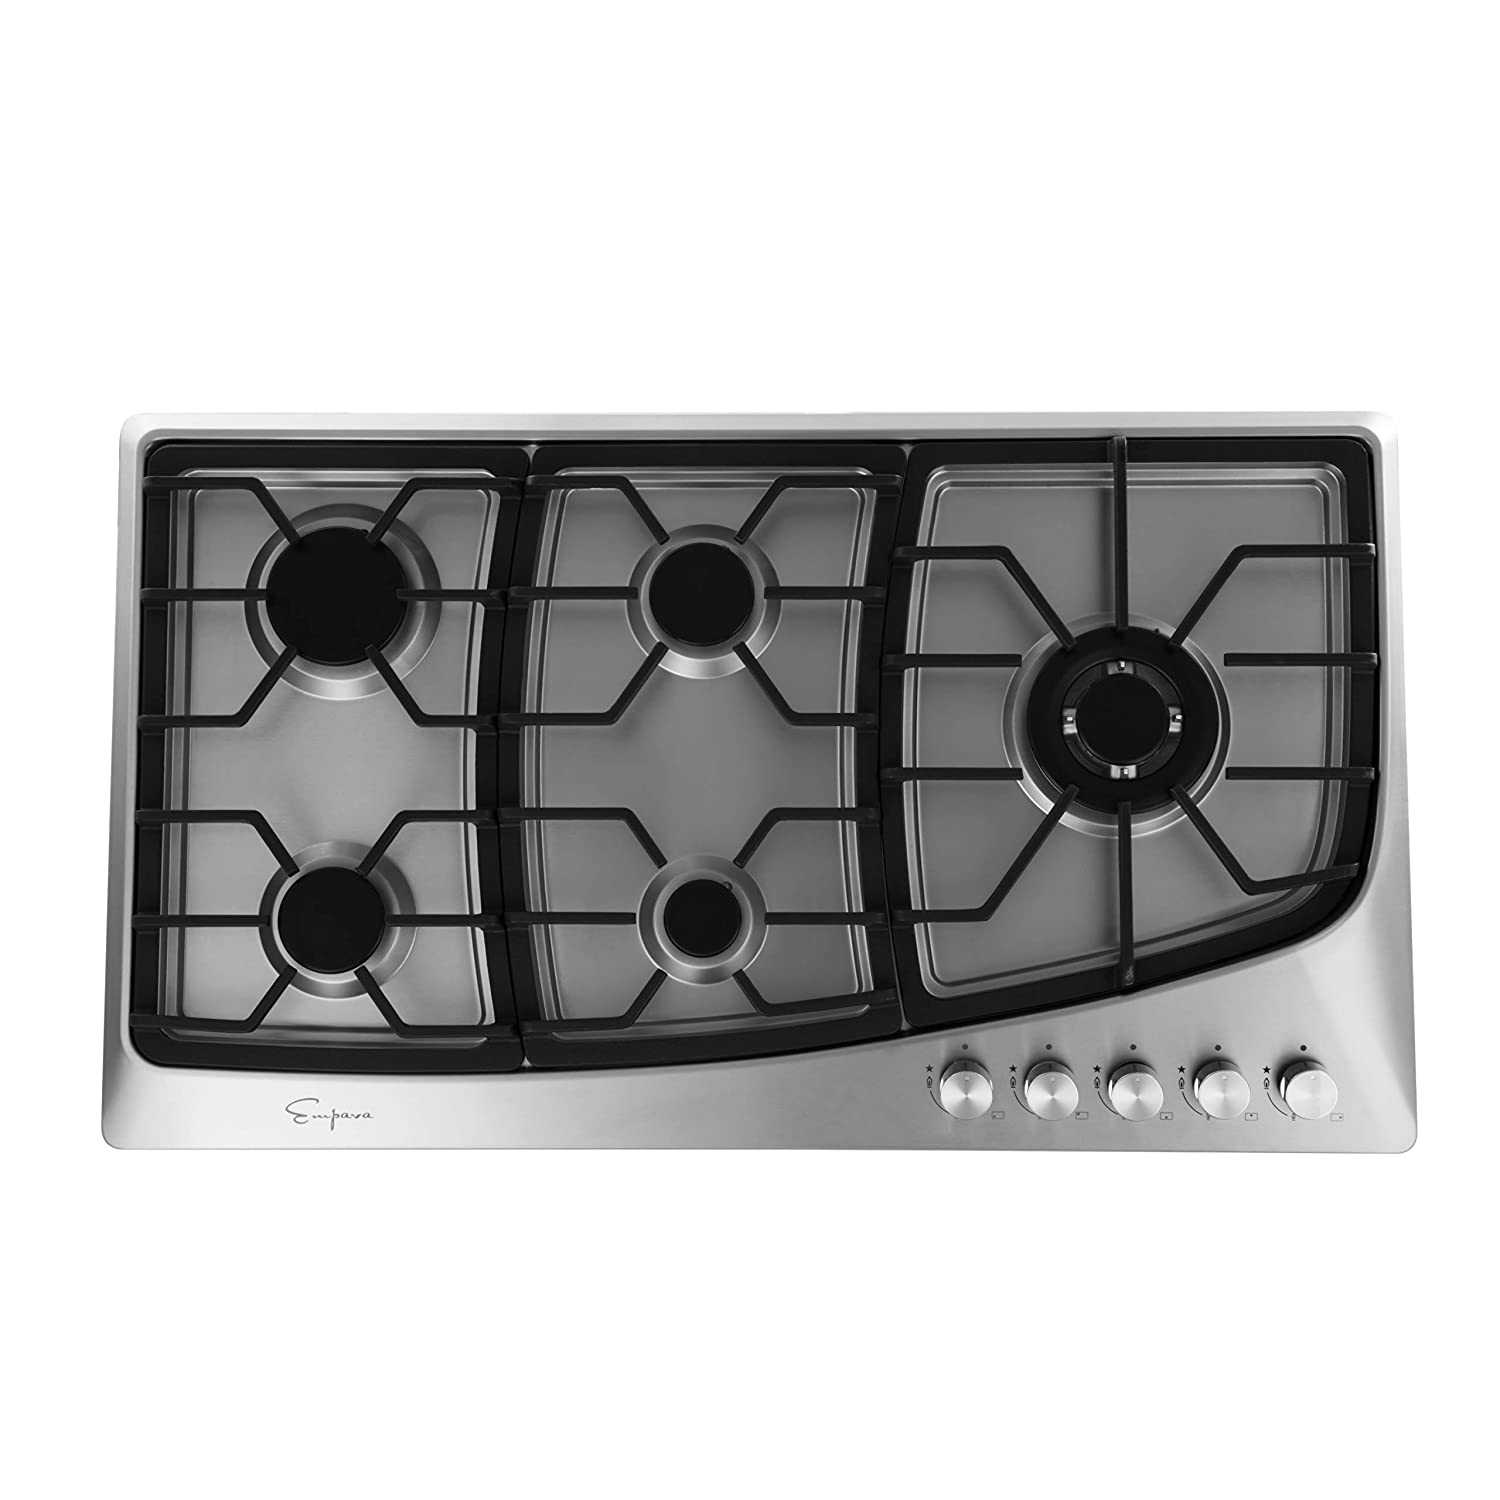 Empava 36' 5 Italy Sabaf Burners Stove Top Gas Cooktop Stainless Steel LPG/NG Convertible EMPV-36GC901